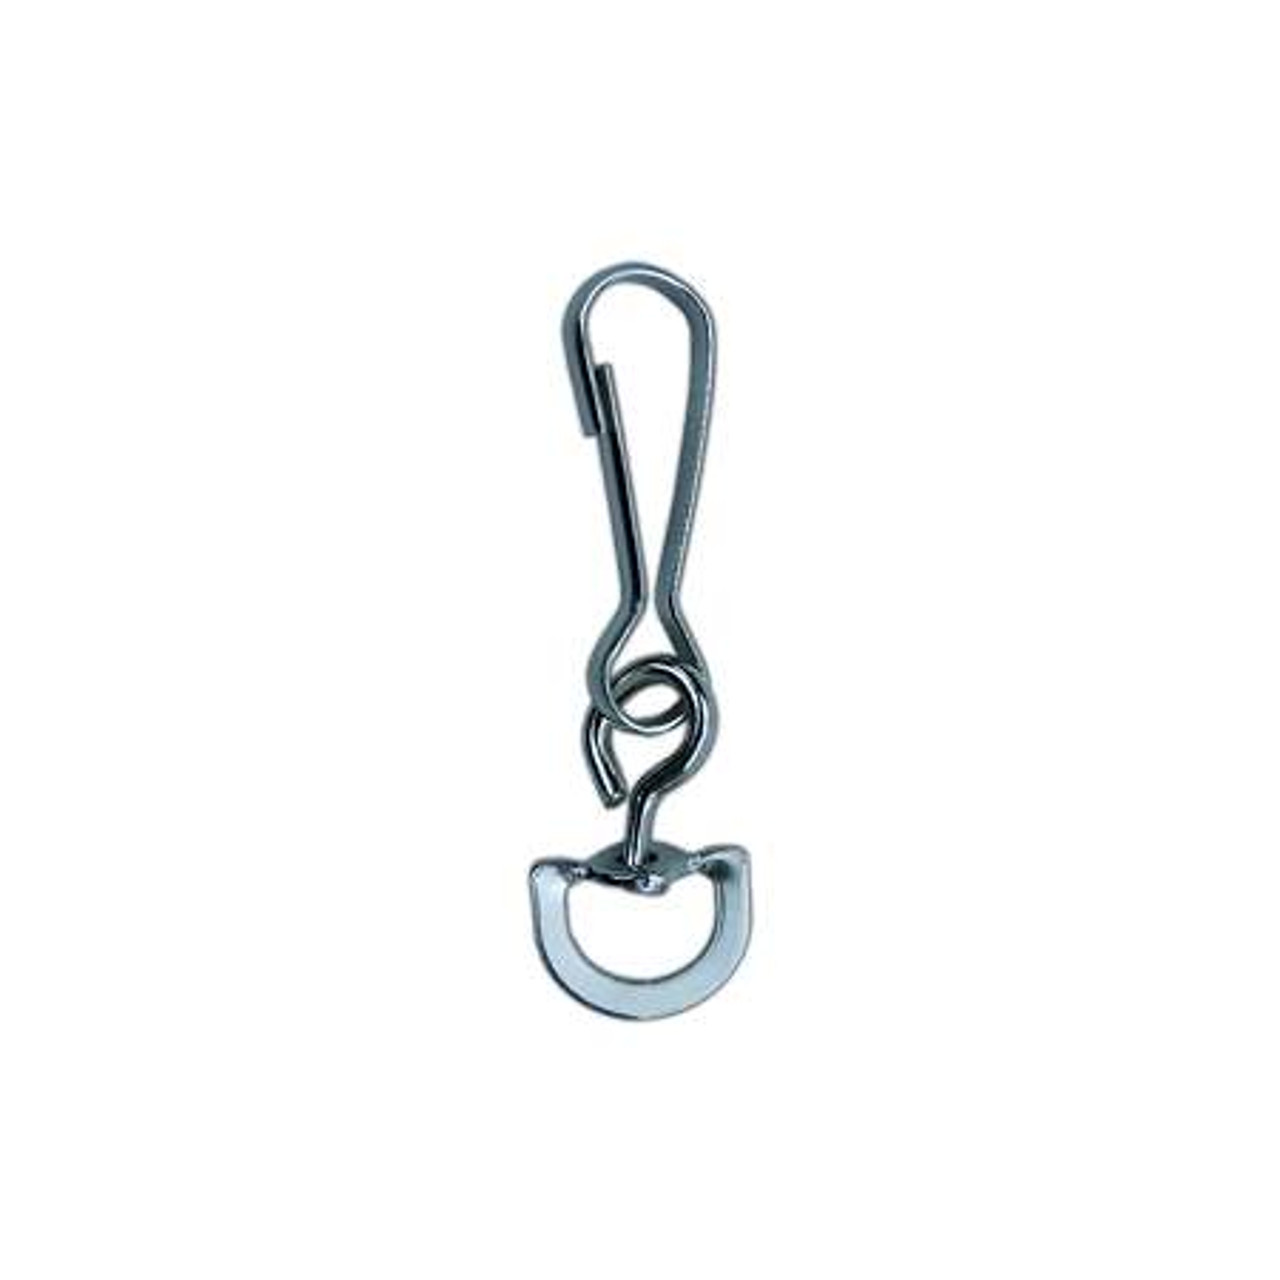 PARACORD PLANET Shark Fin Snap Hooks 360 Degree Swivel Snap Hook with Extended Fin